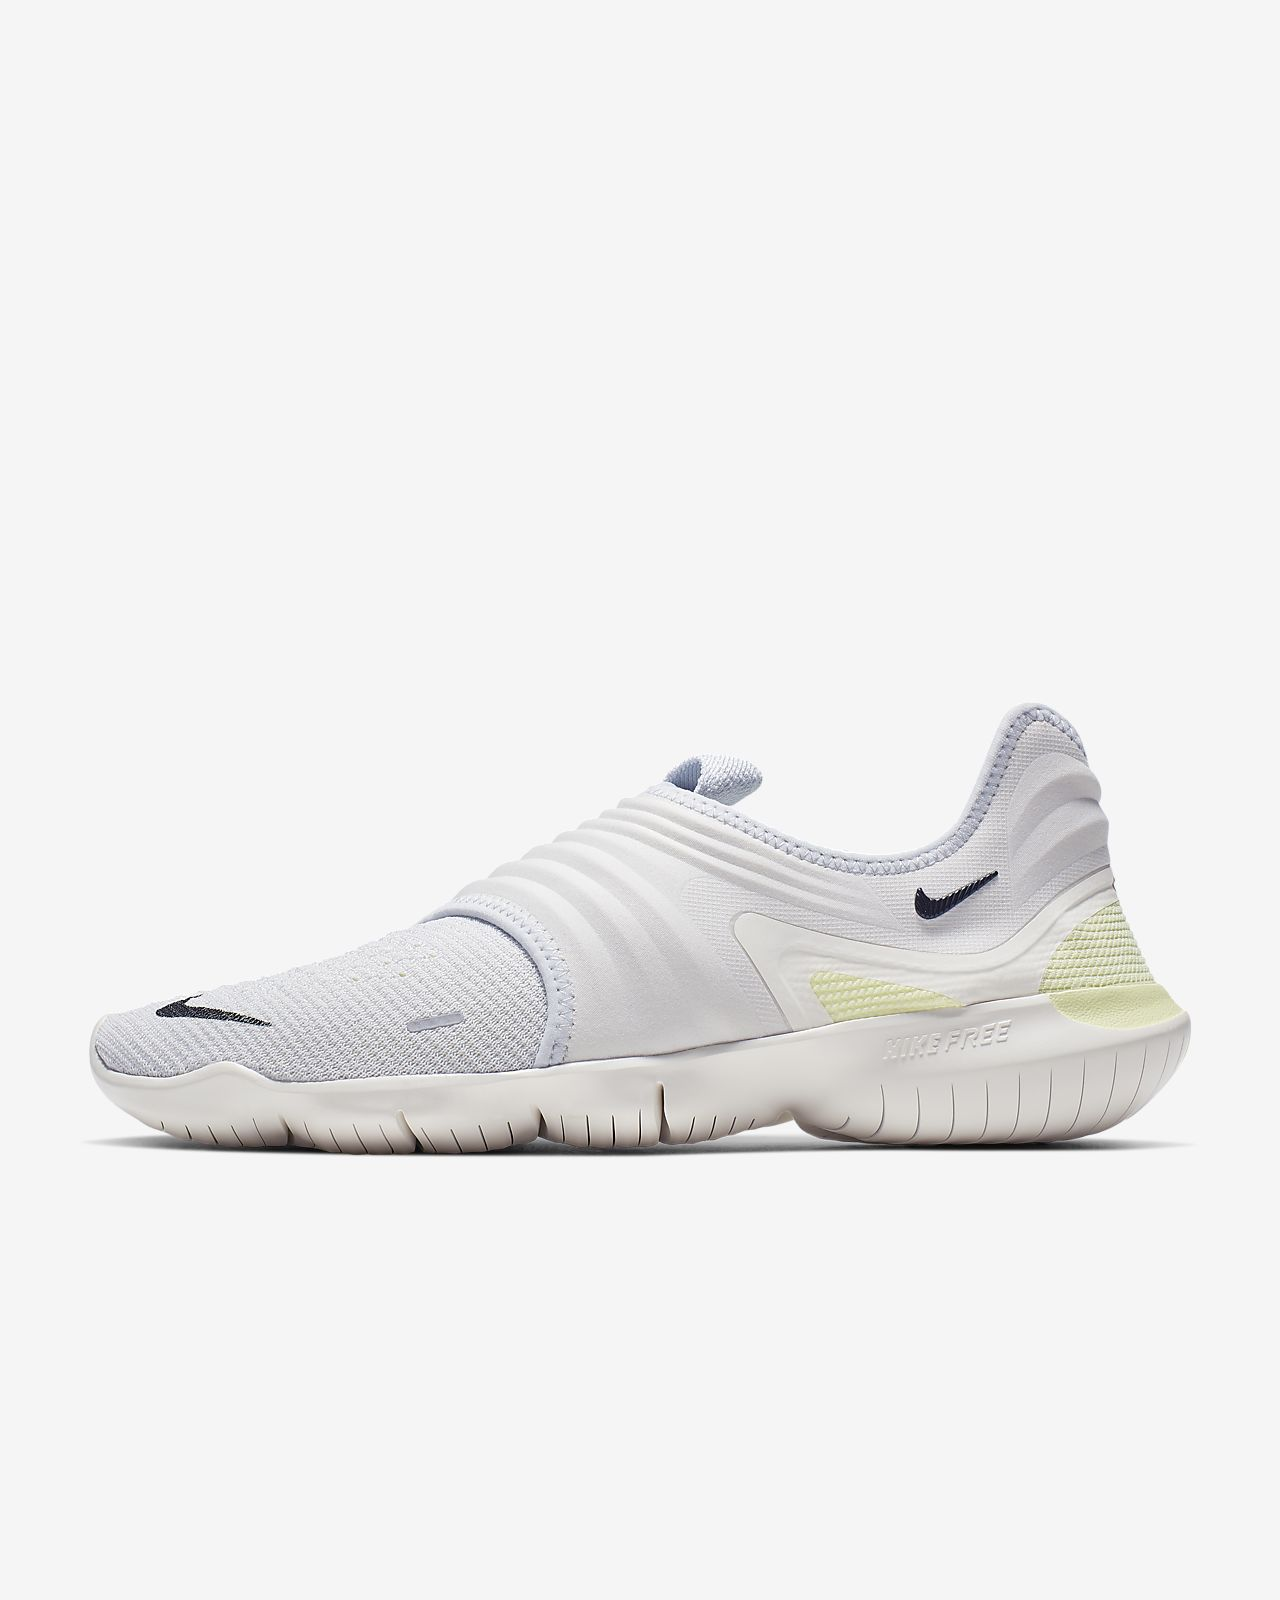 uk availability 85751 77f0d ... Chaussure de running Nike Free RN Flyknit 3.0 pour Homme